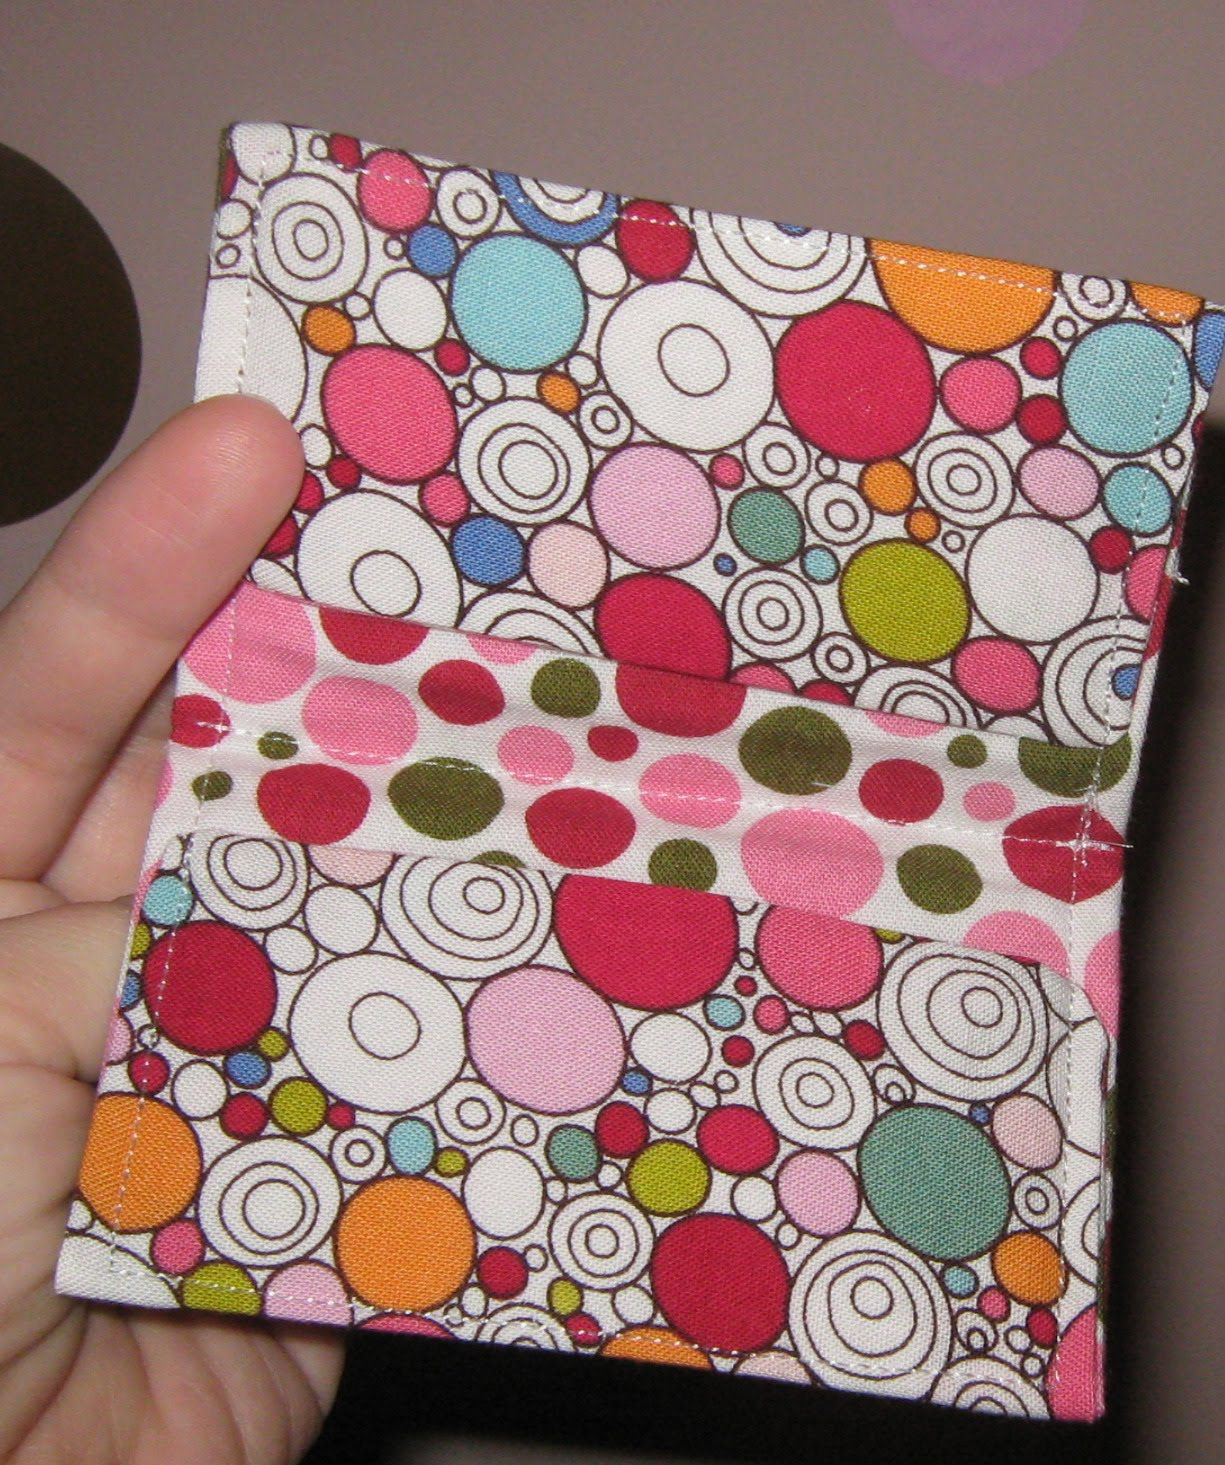 Today I have a tutorial for making a fabric business card holder ...